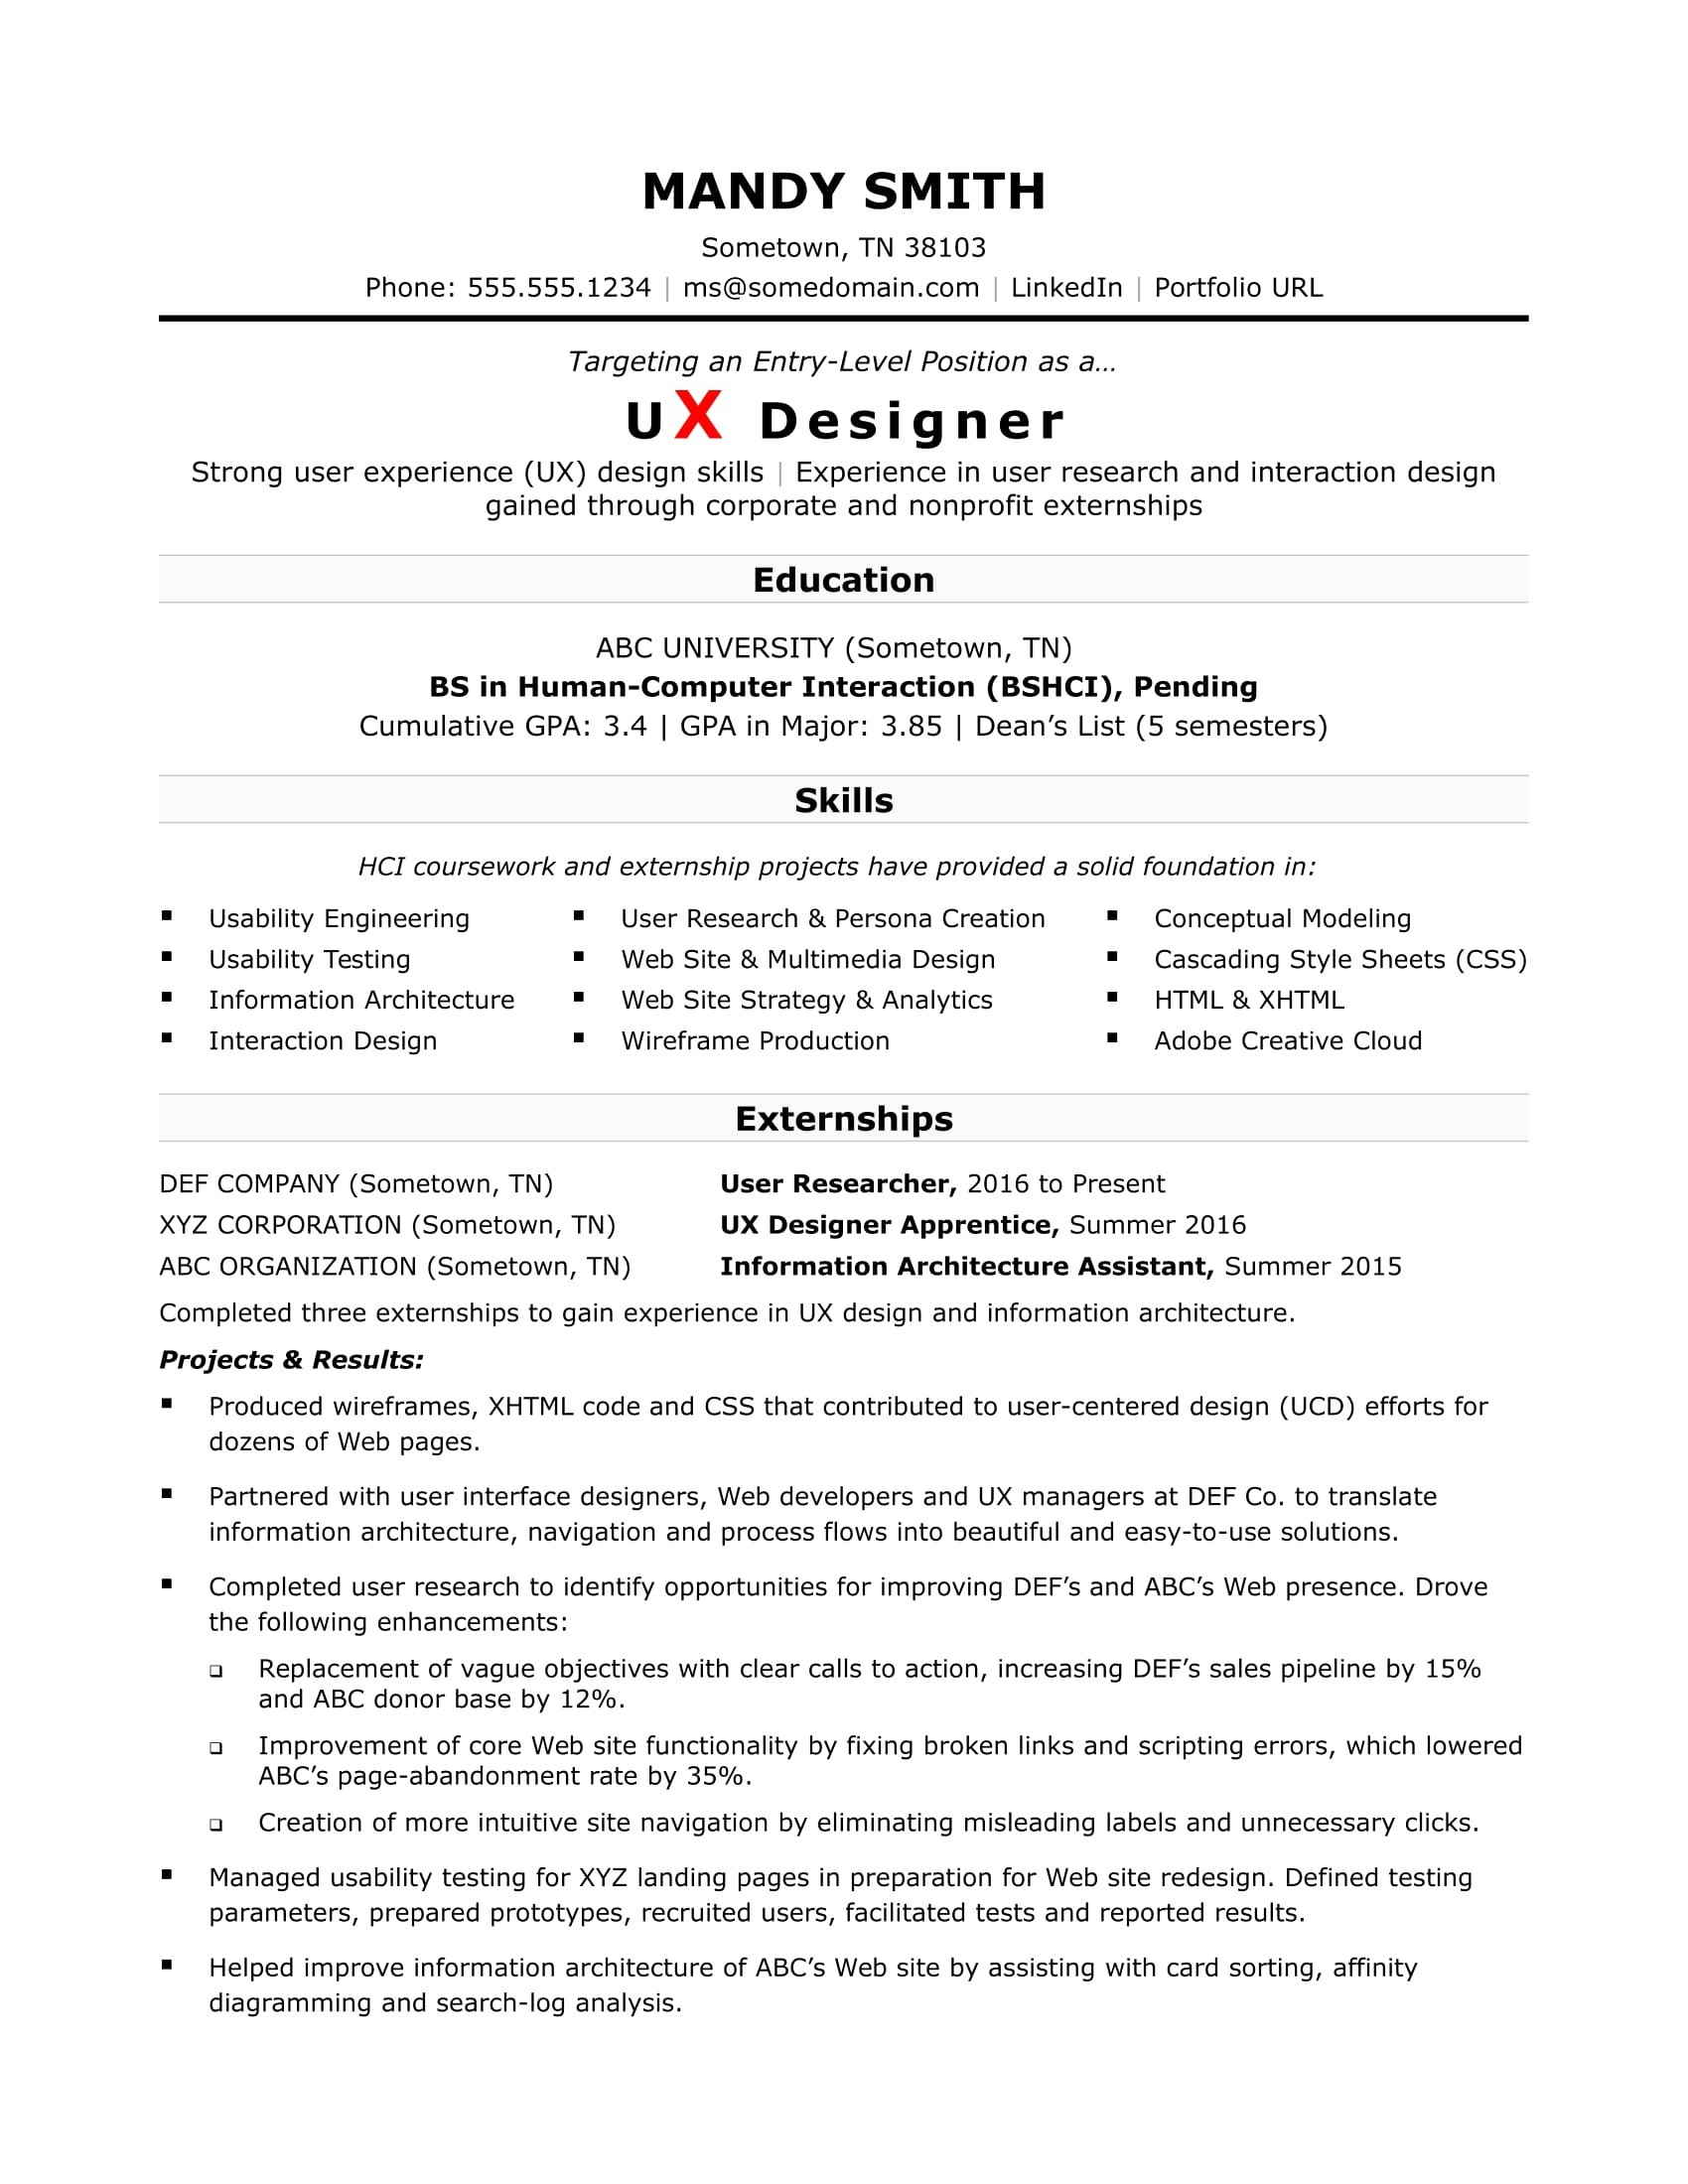 Ui Ux Resume - Web Researcher Refrence areas Expertise Resume Awesome Research